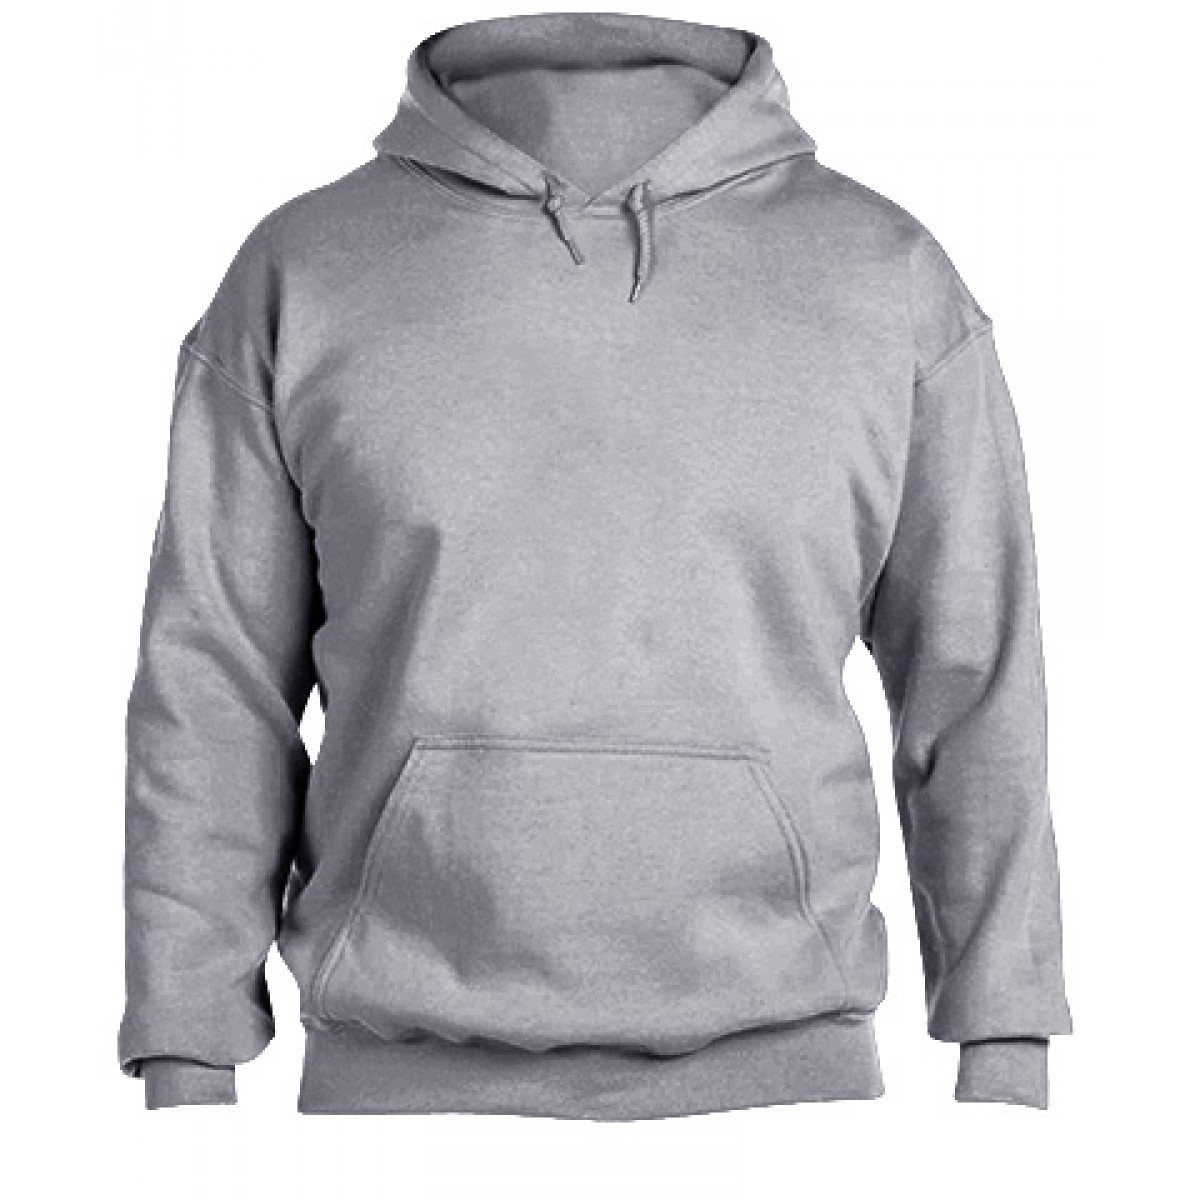 Hooded Sweatshirt 50/50 Heavy Blend -Ash Gray-3XL